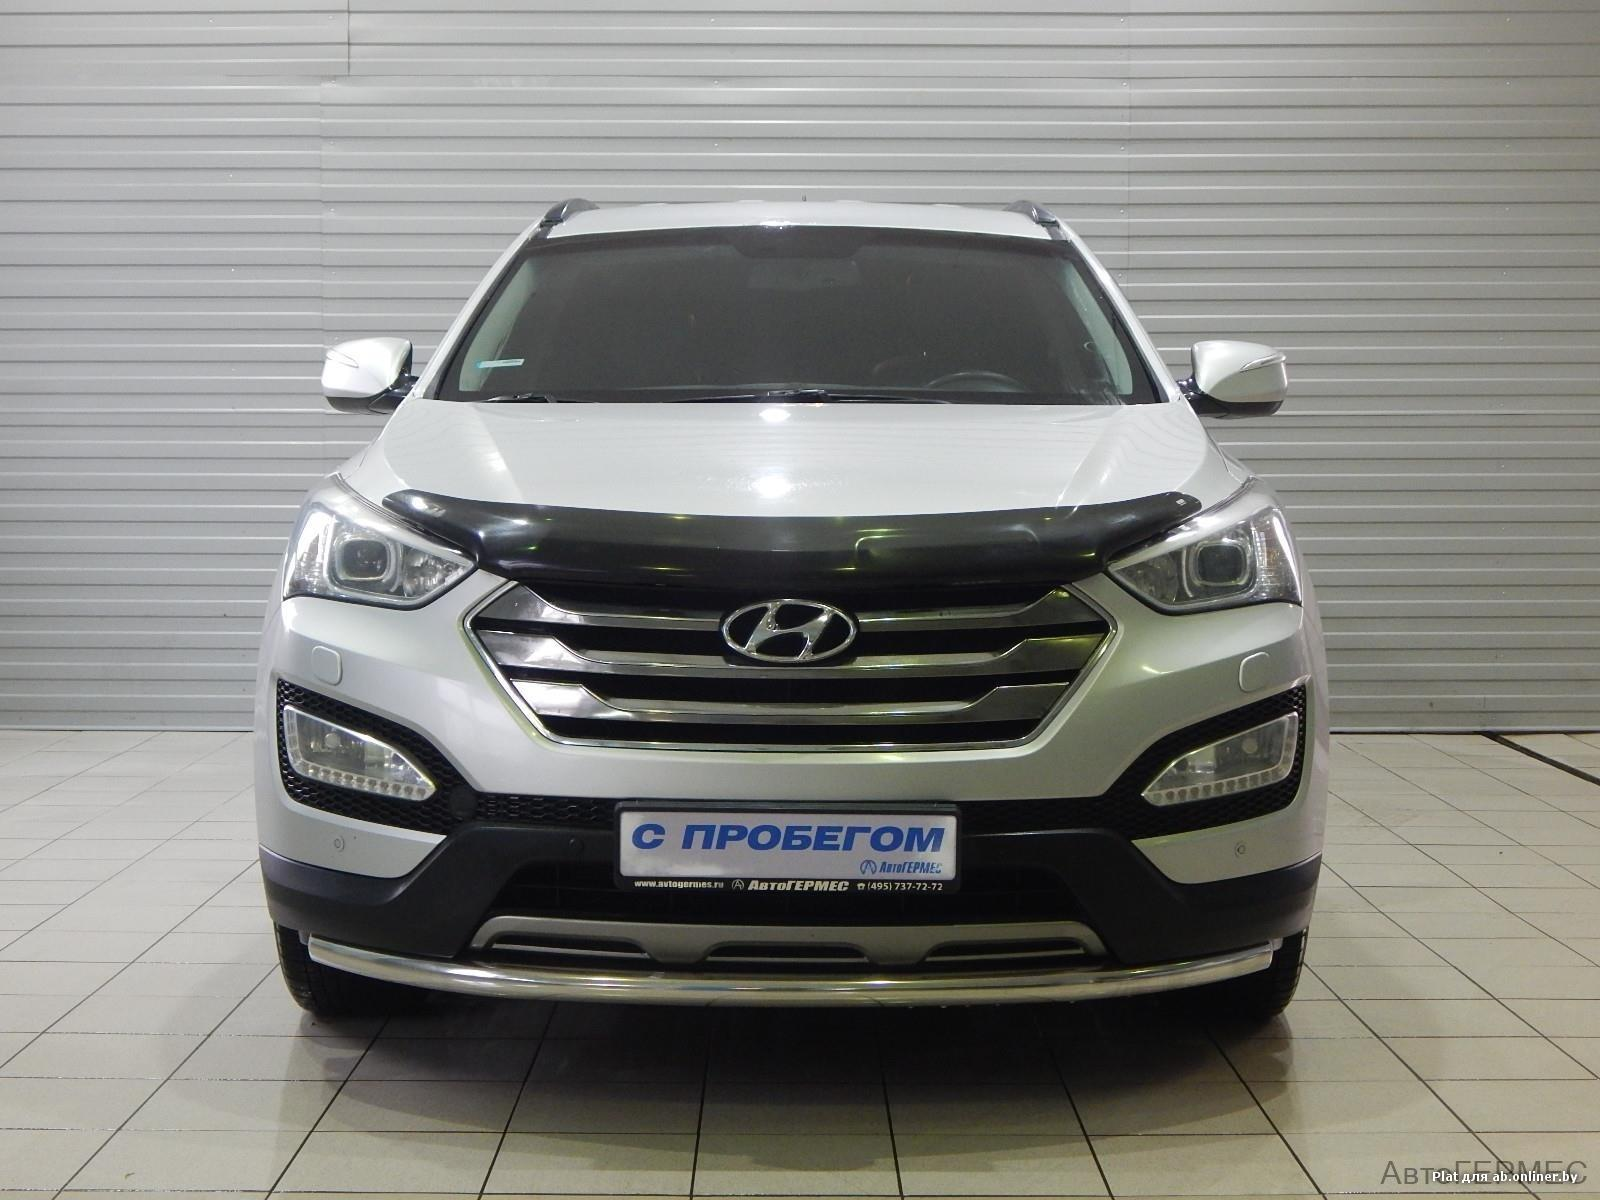 Hyundai Santa Fe 2.2 CRDi High-Tech AT 4WD